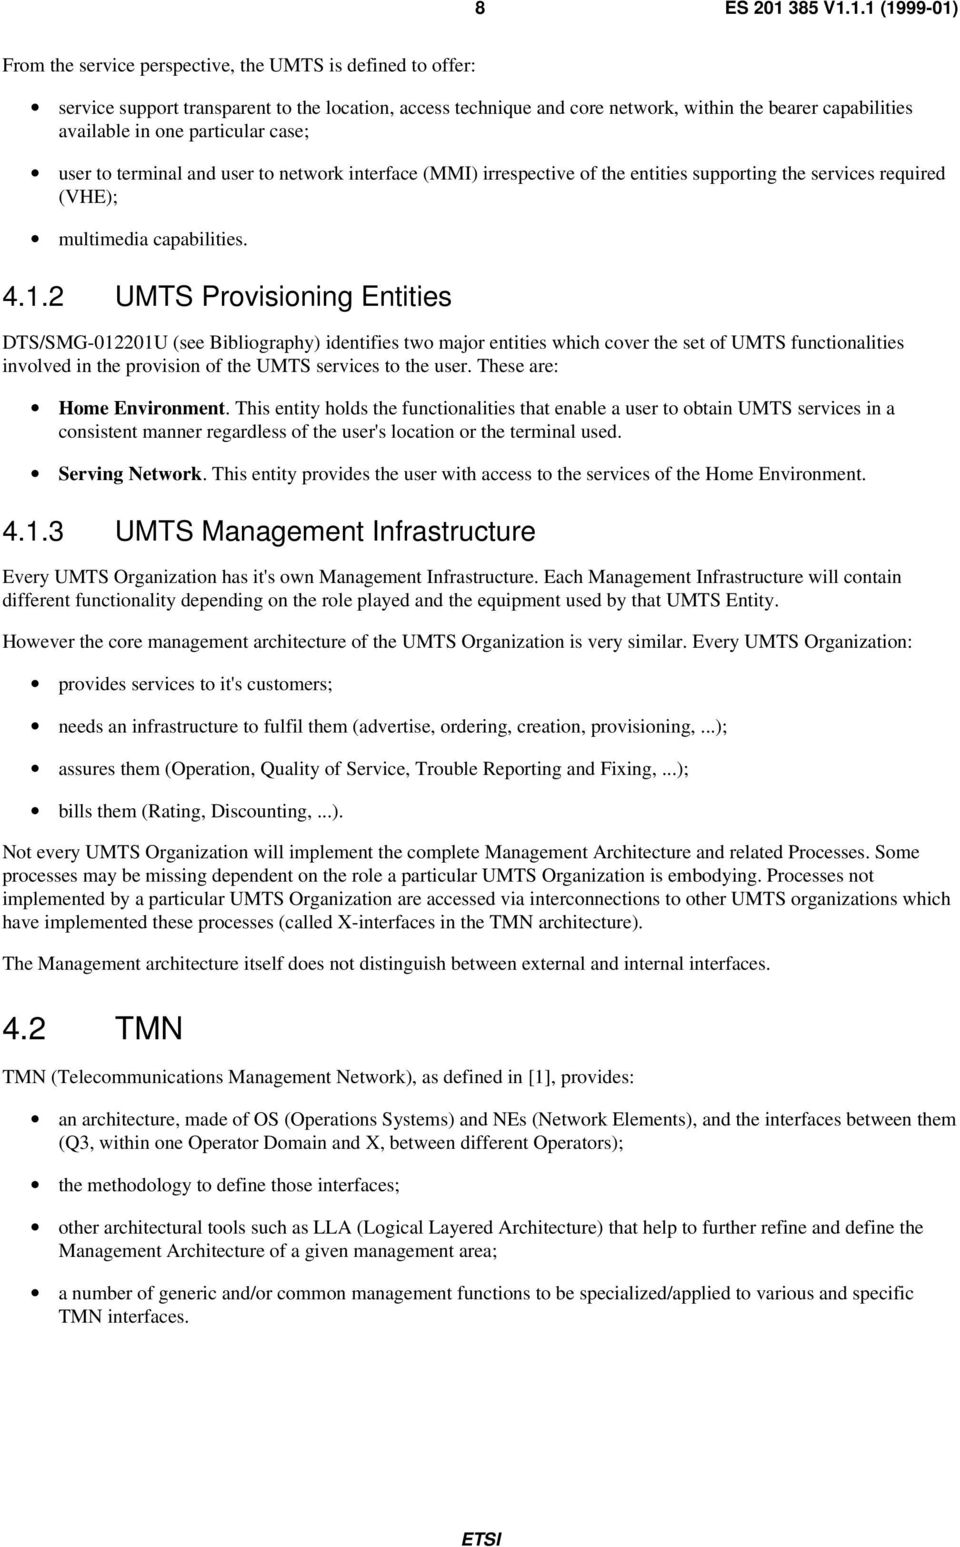 2 UMTS Provisioning Entities DTS/SMG-012201U (see Bibliography) identifies two major entities which cover the set of UMTS functionalities involved in the provision of the UMTS services to the user.